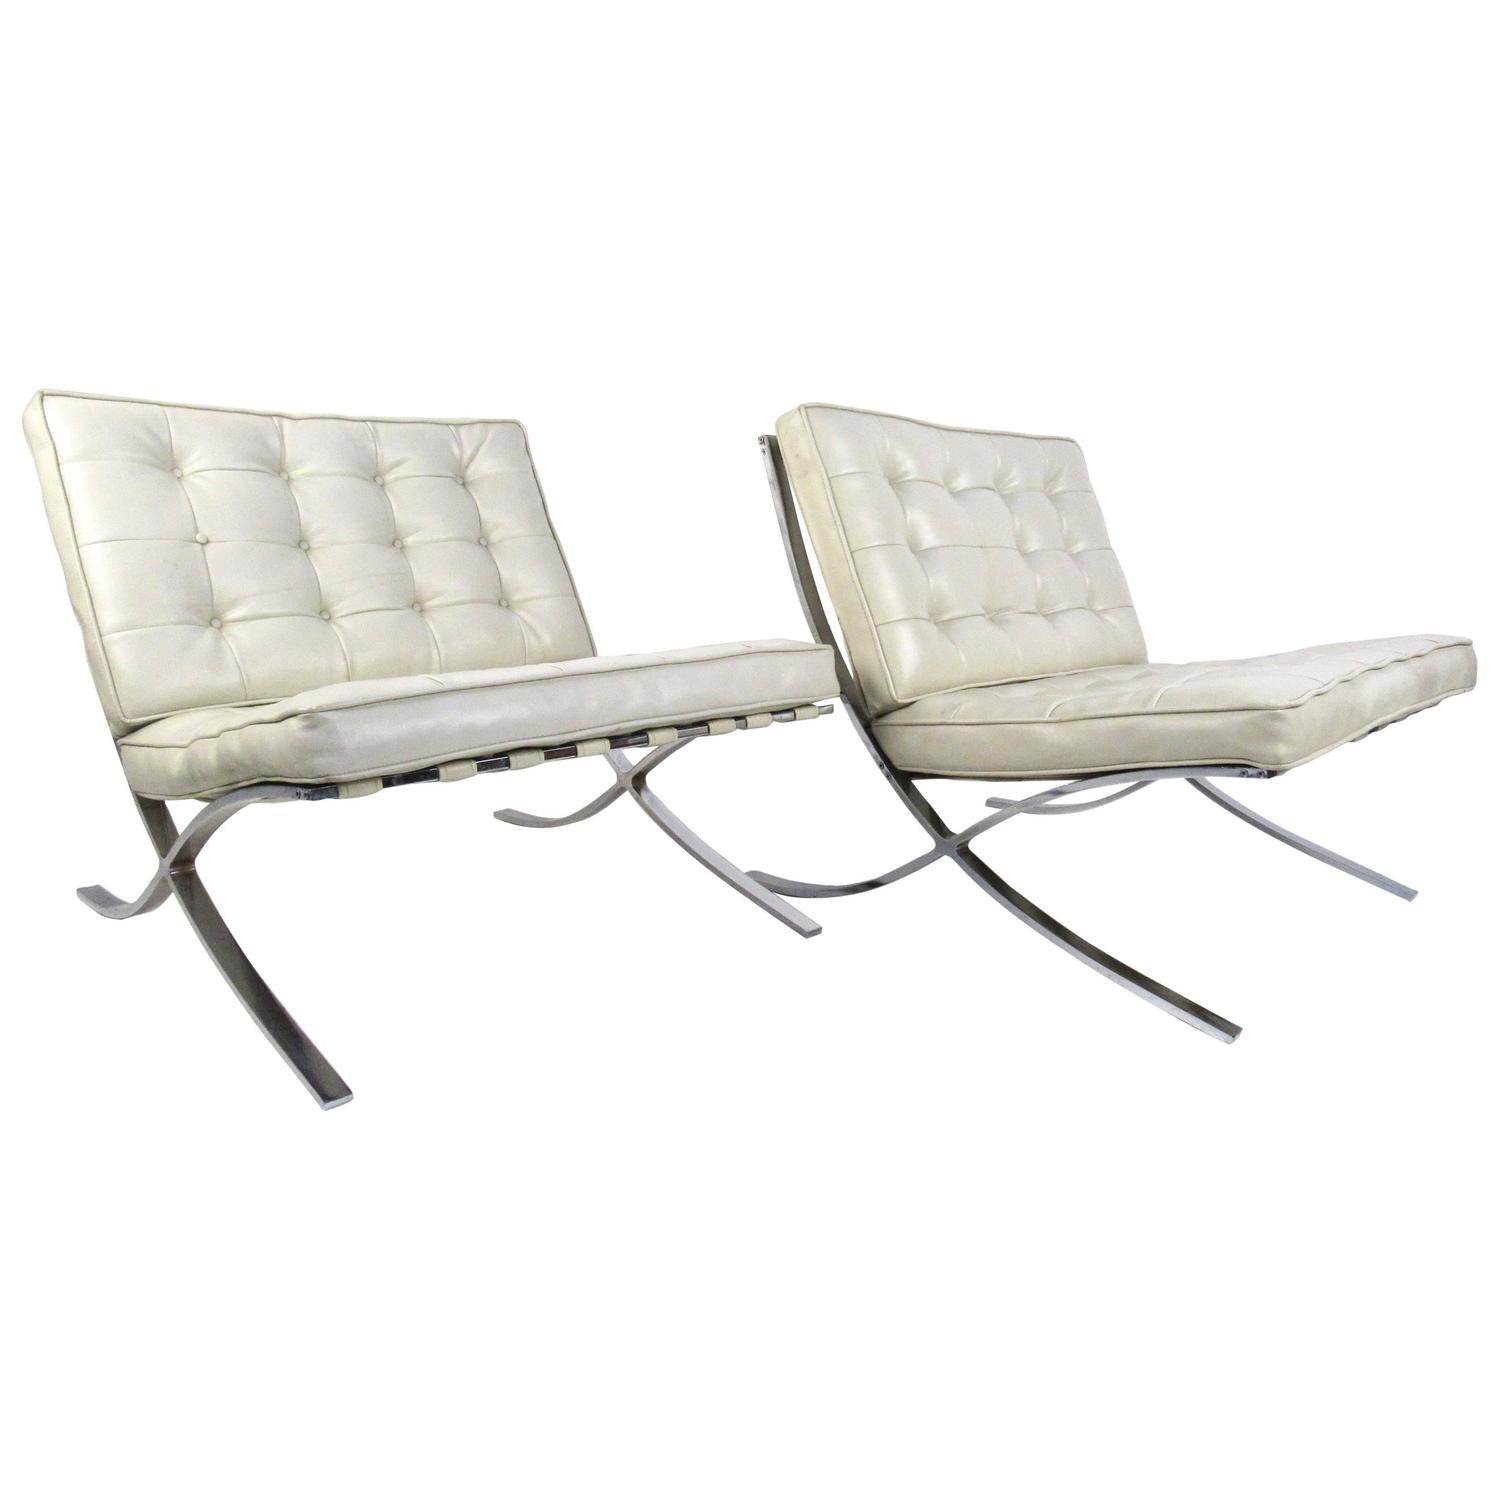 Barcelona Style Chair The Best Inspiration for Interiors  : 6203013z from samtog.info size 1500 x 1500 jpeg 61kB